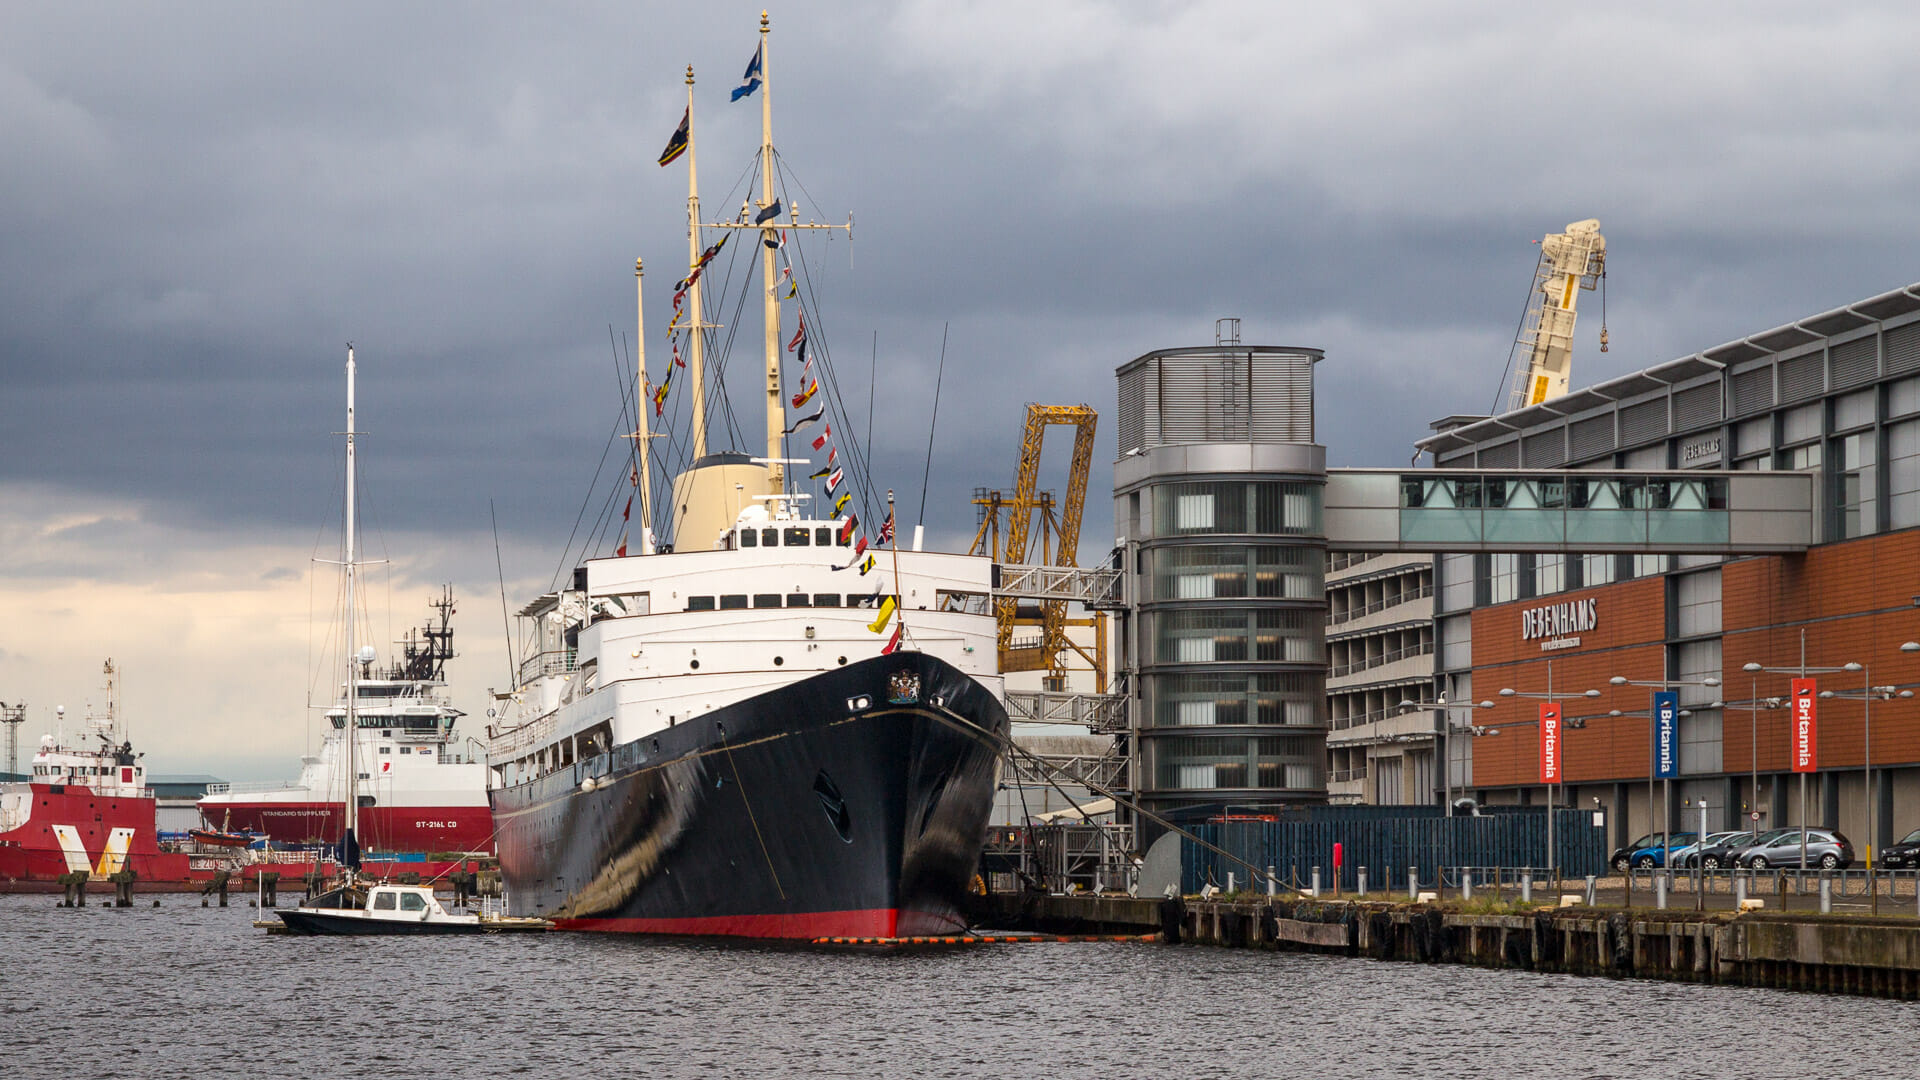 Die Royal Yacht Britannia in Leith